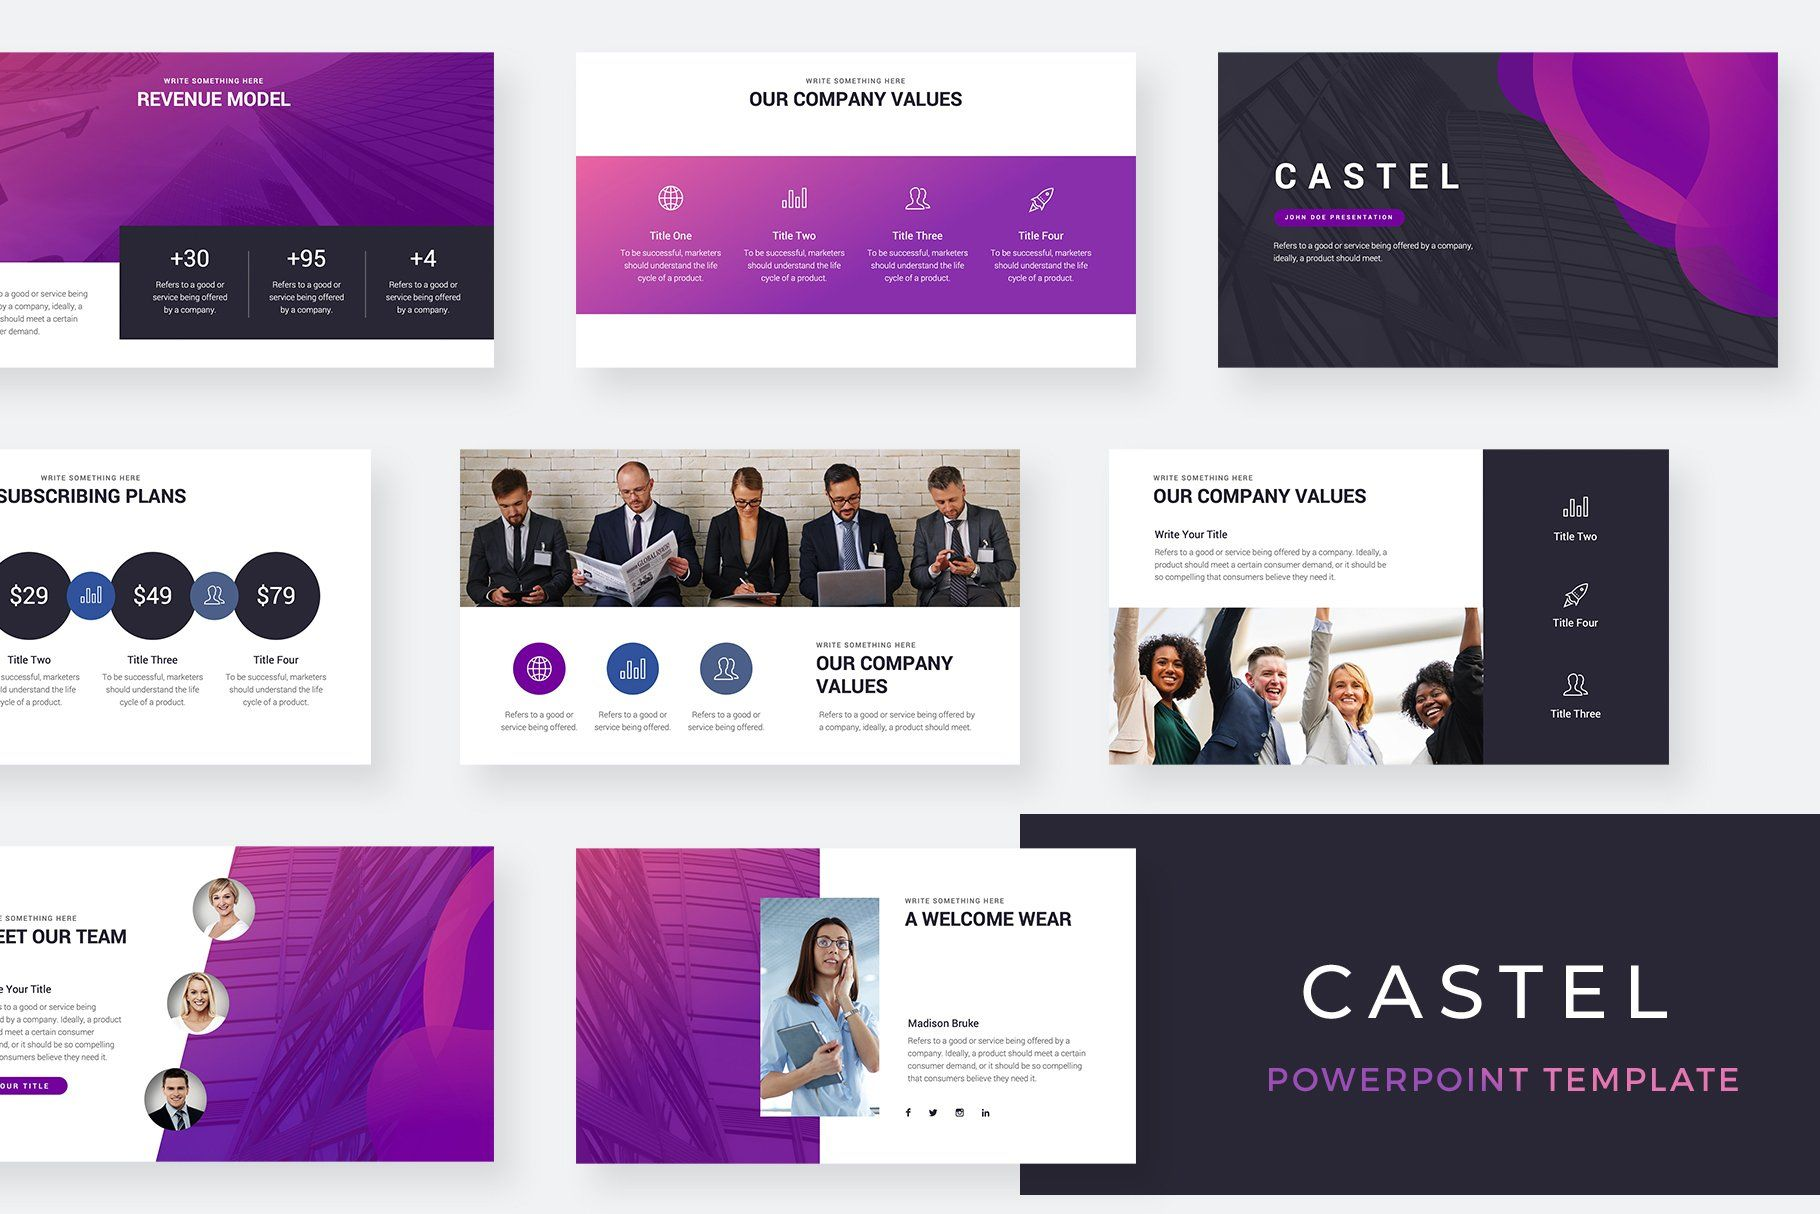 Castel Powerpoint Template By Slidequest On Creativemarket